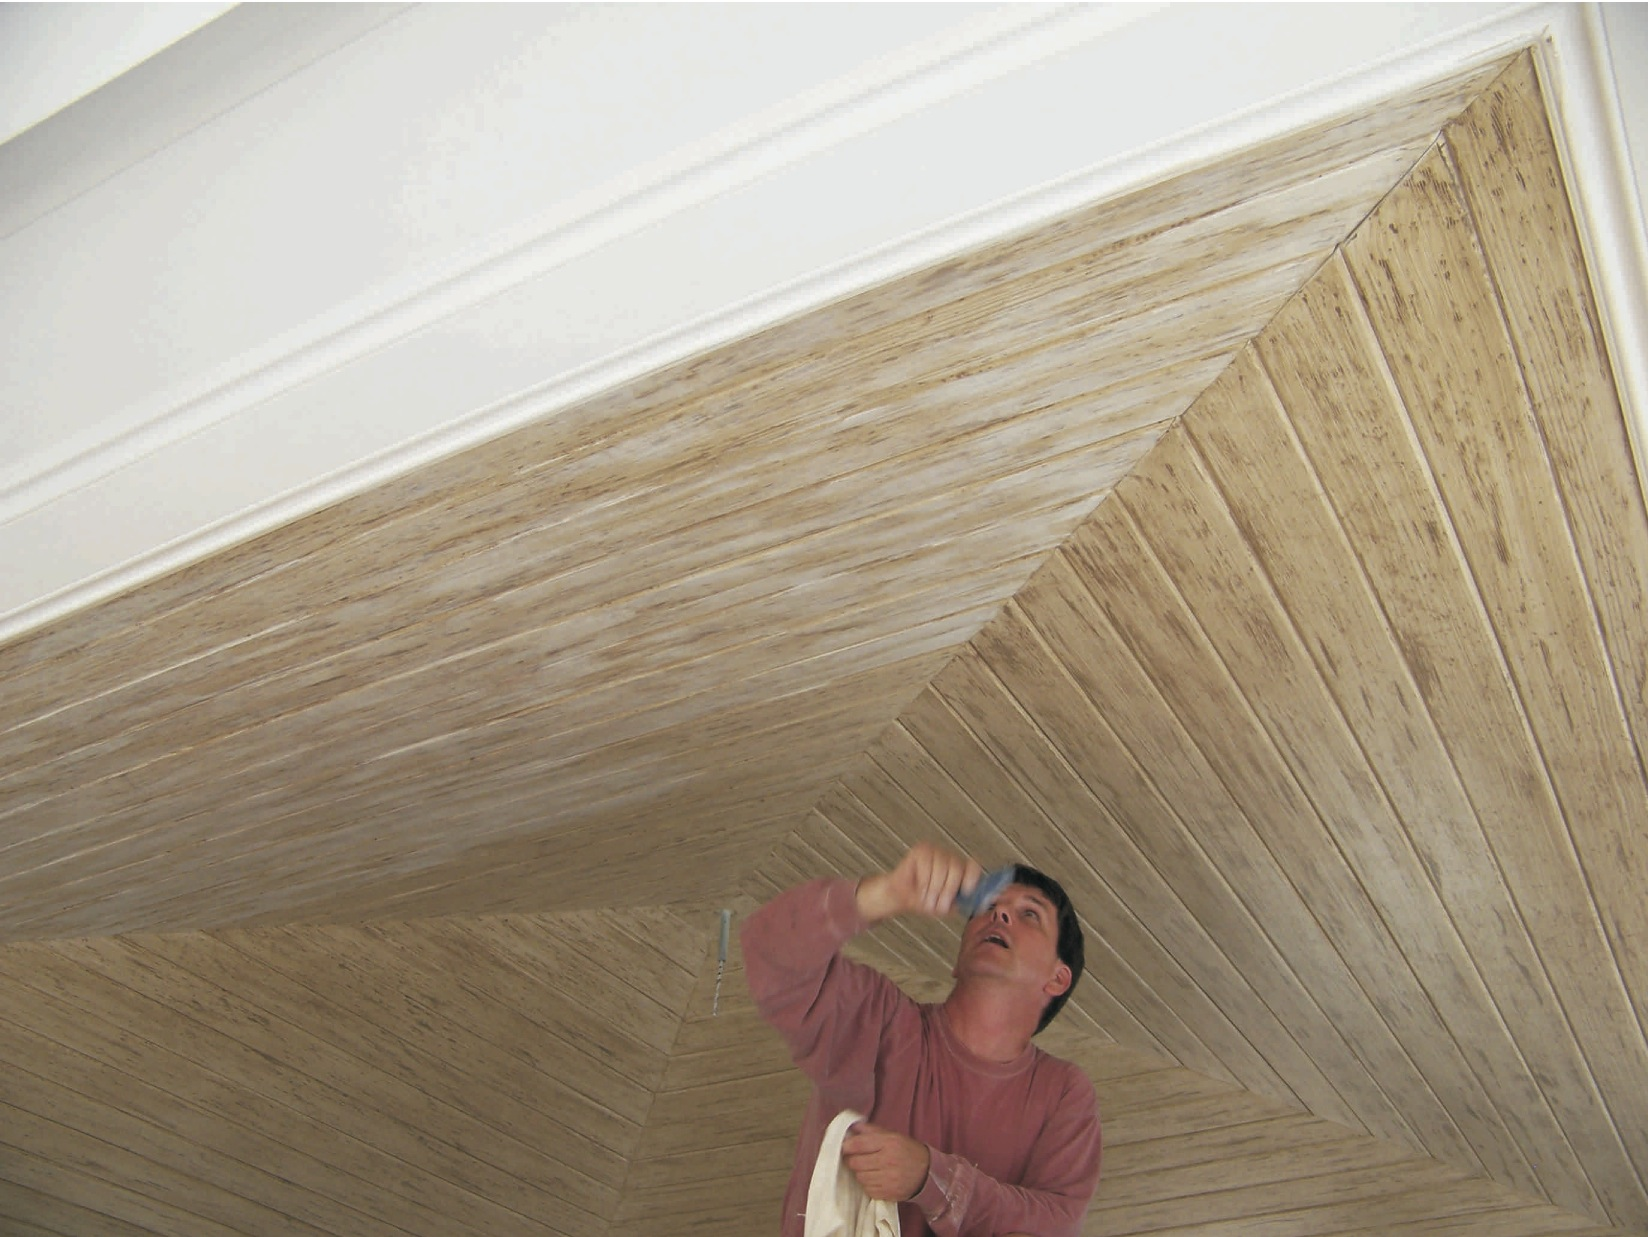 Ceiling faux finishing in process - Nassau, Bahamas (Lyford Cay)